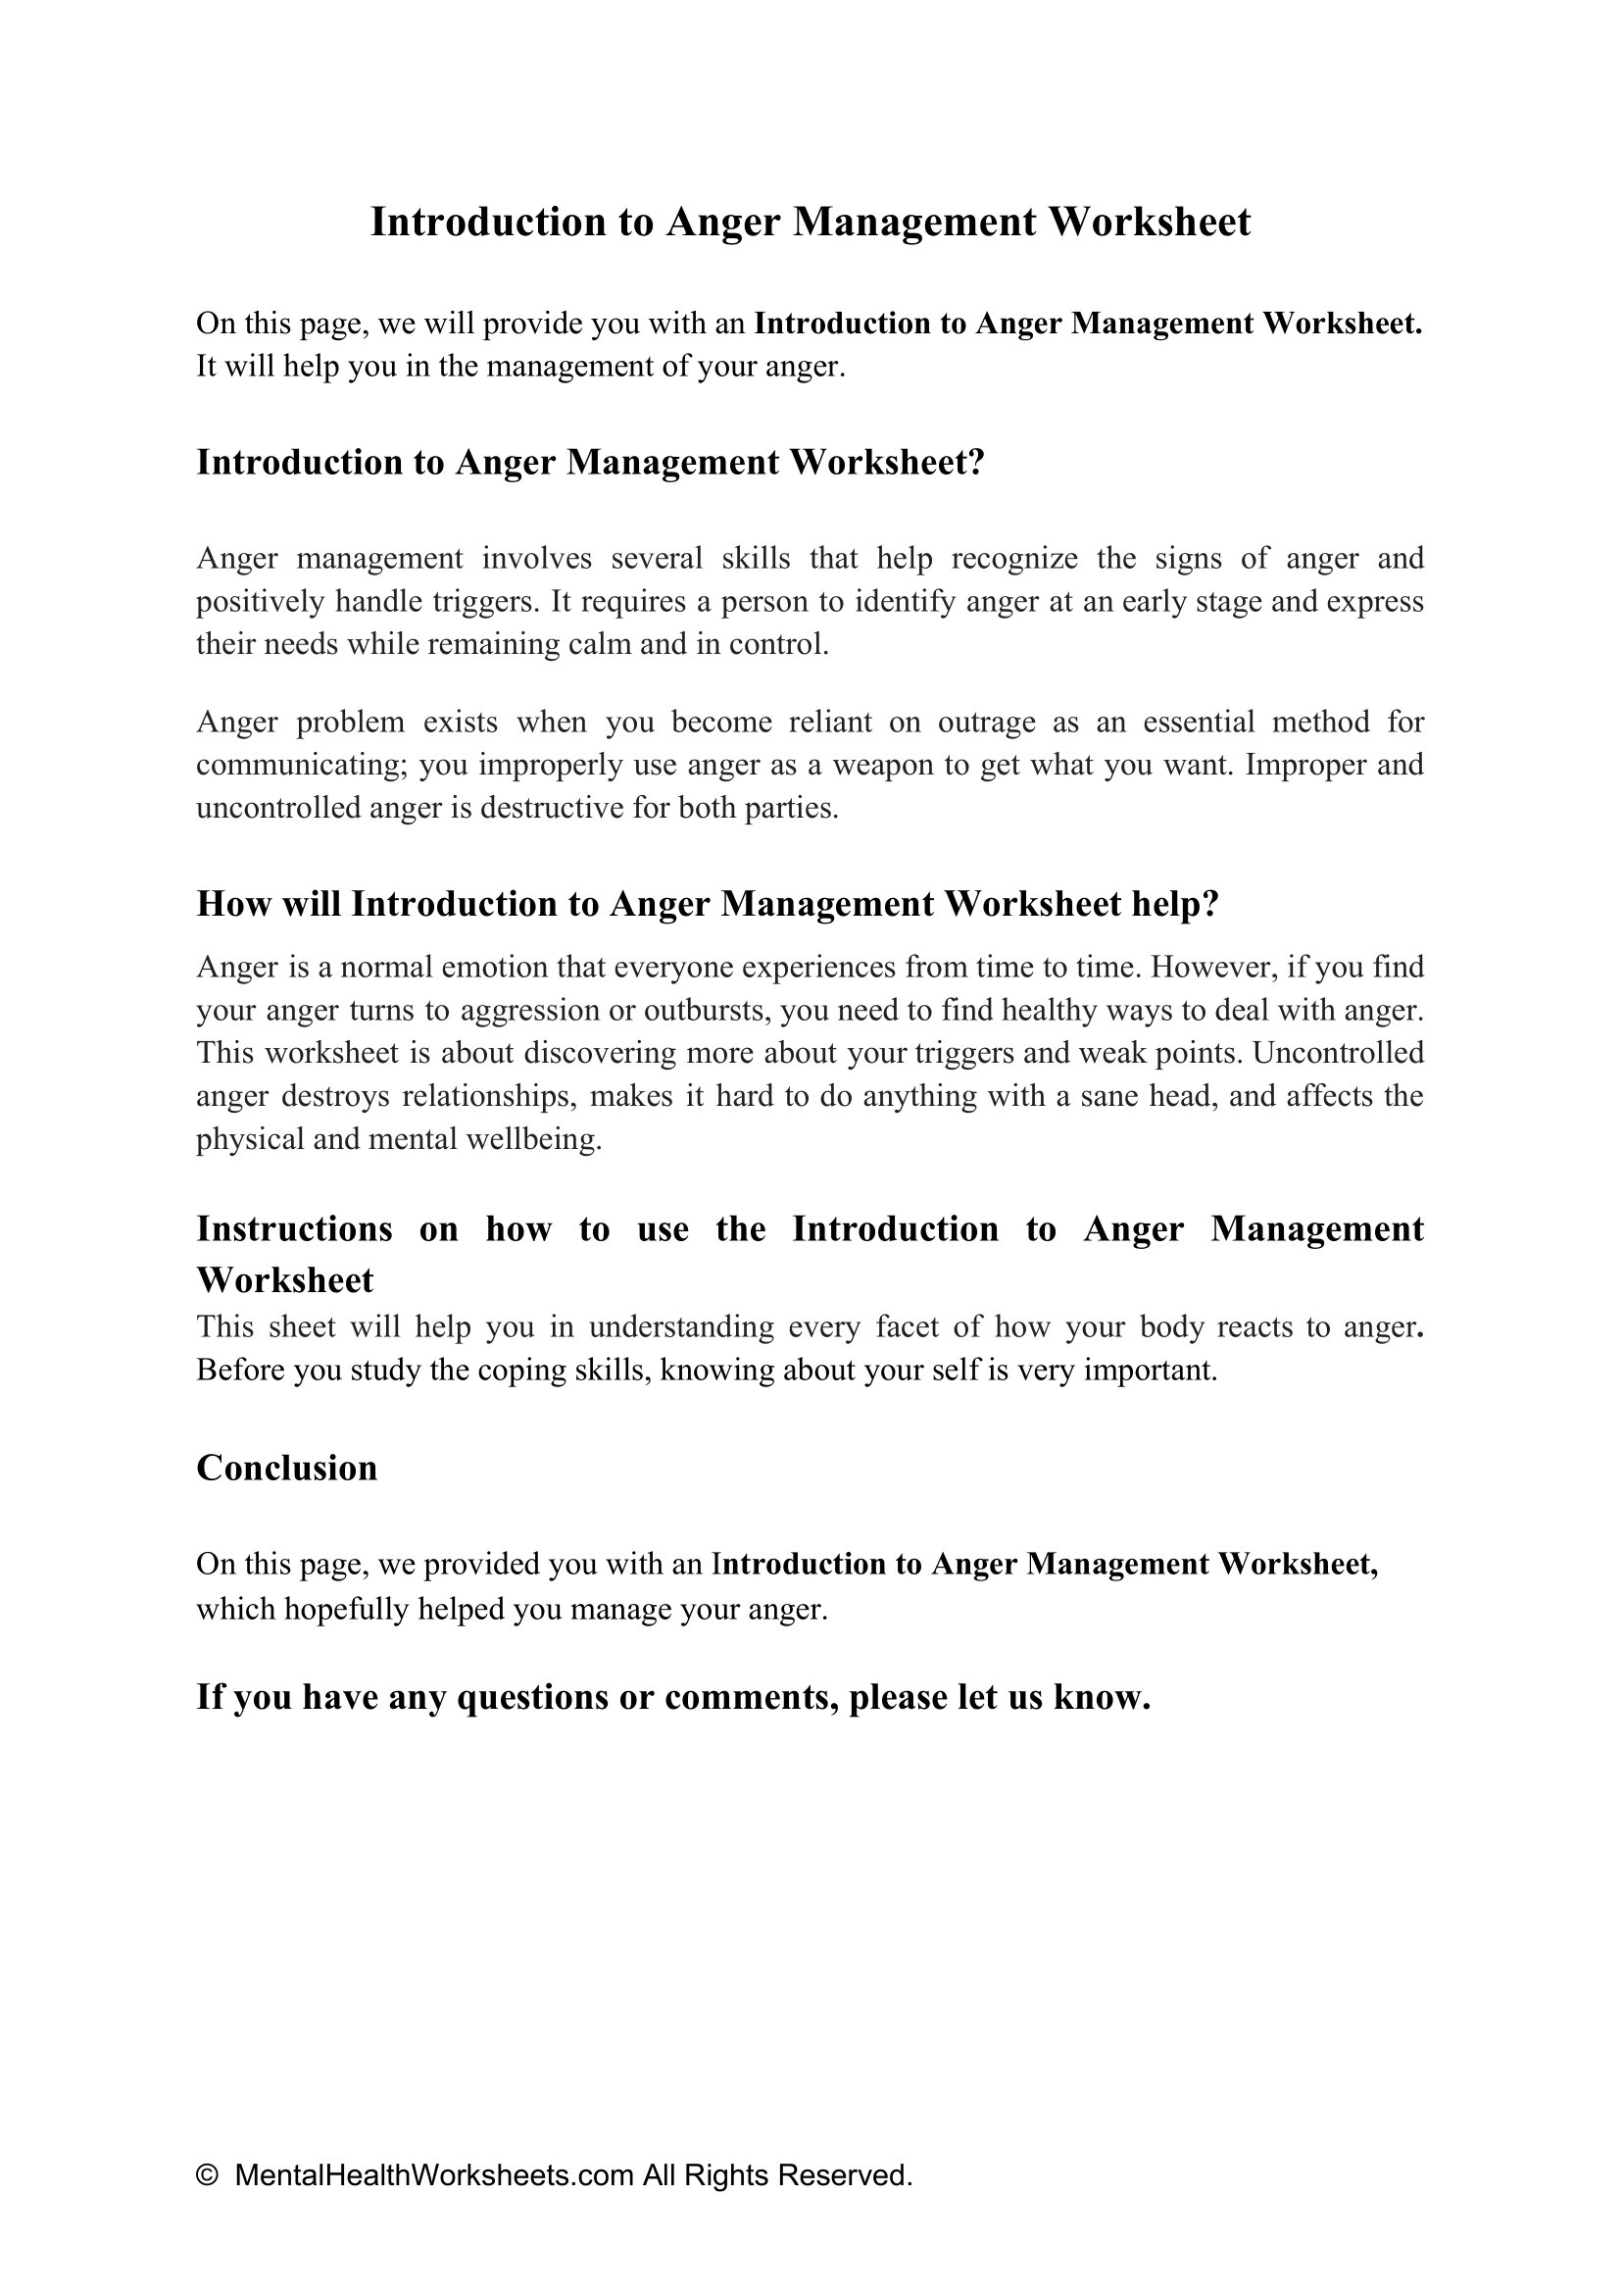 Introduction To Anger Management Worksheet